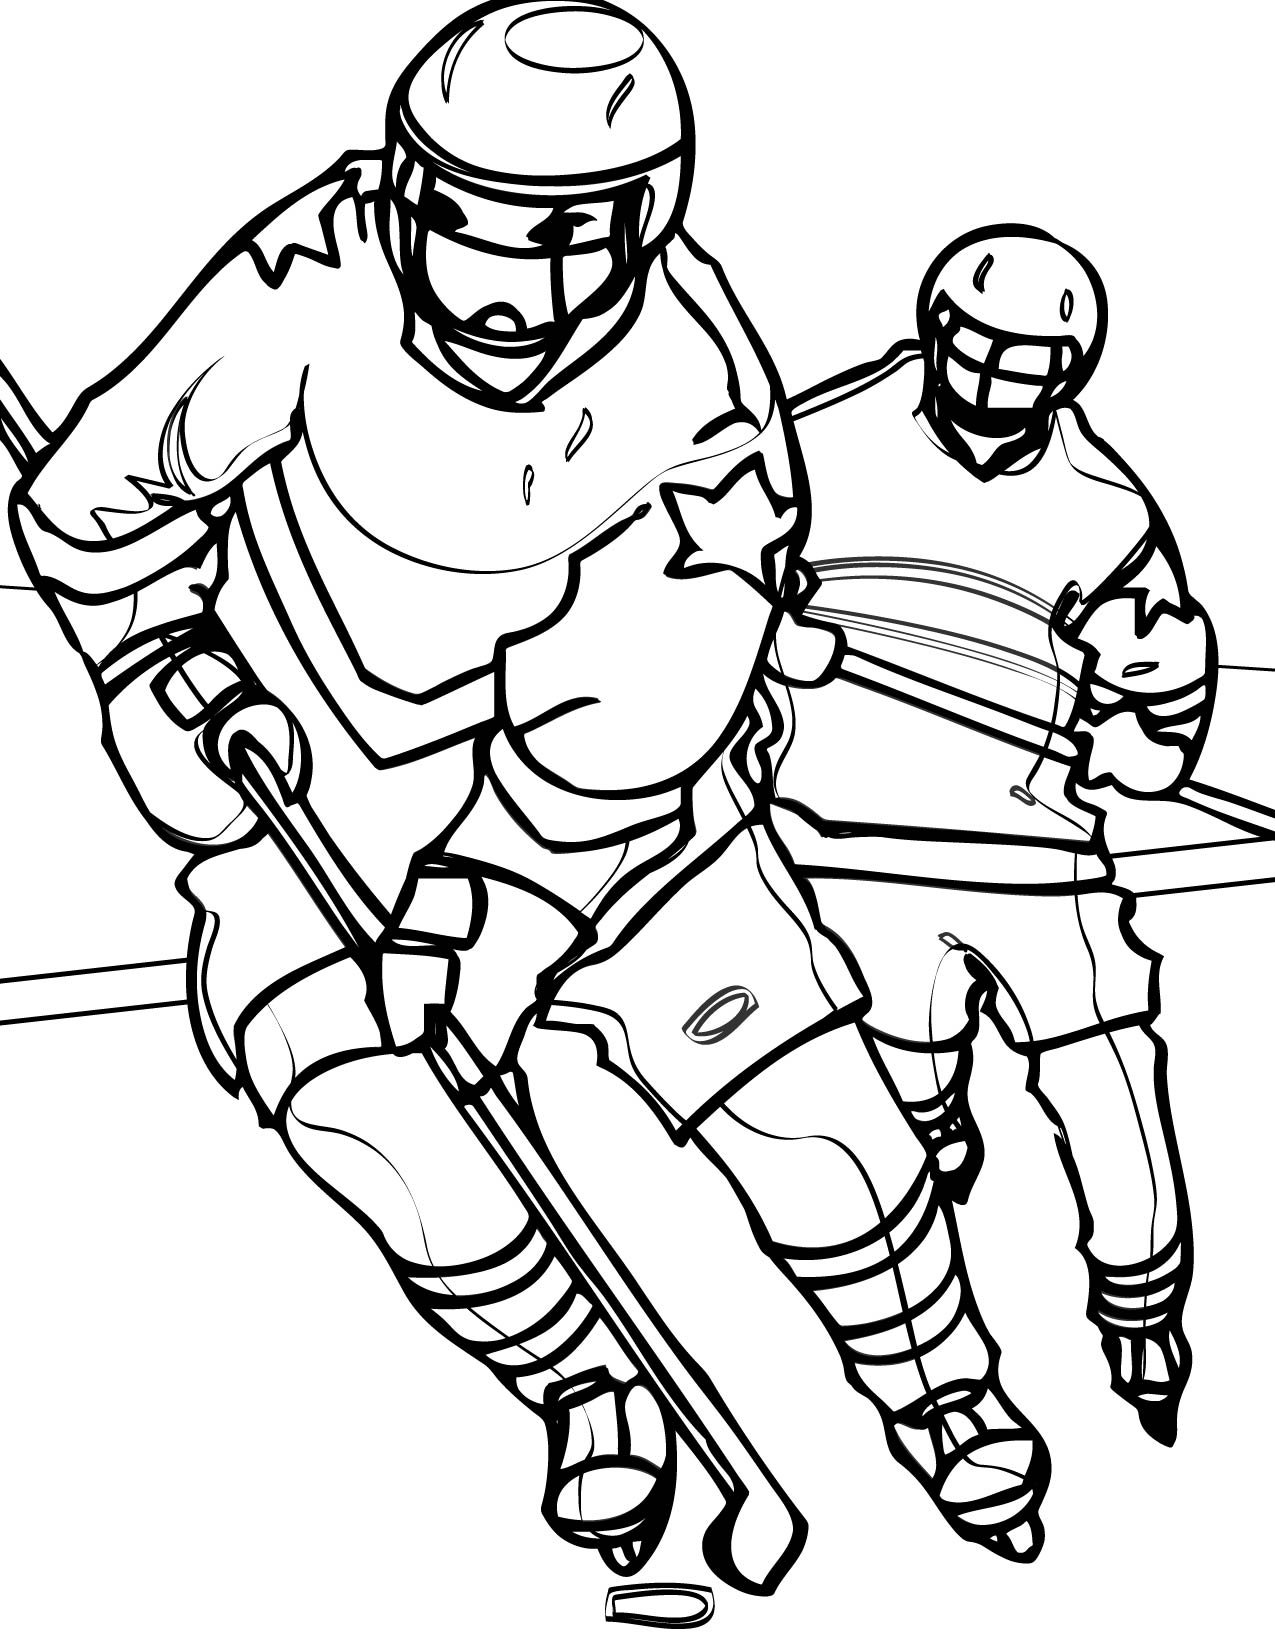 sports coloring pages for kids - photo#20